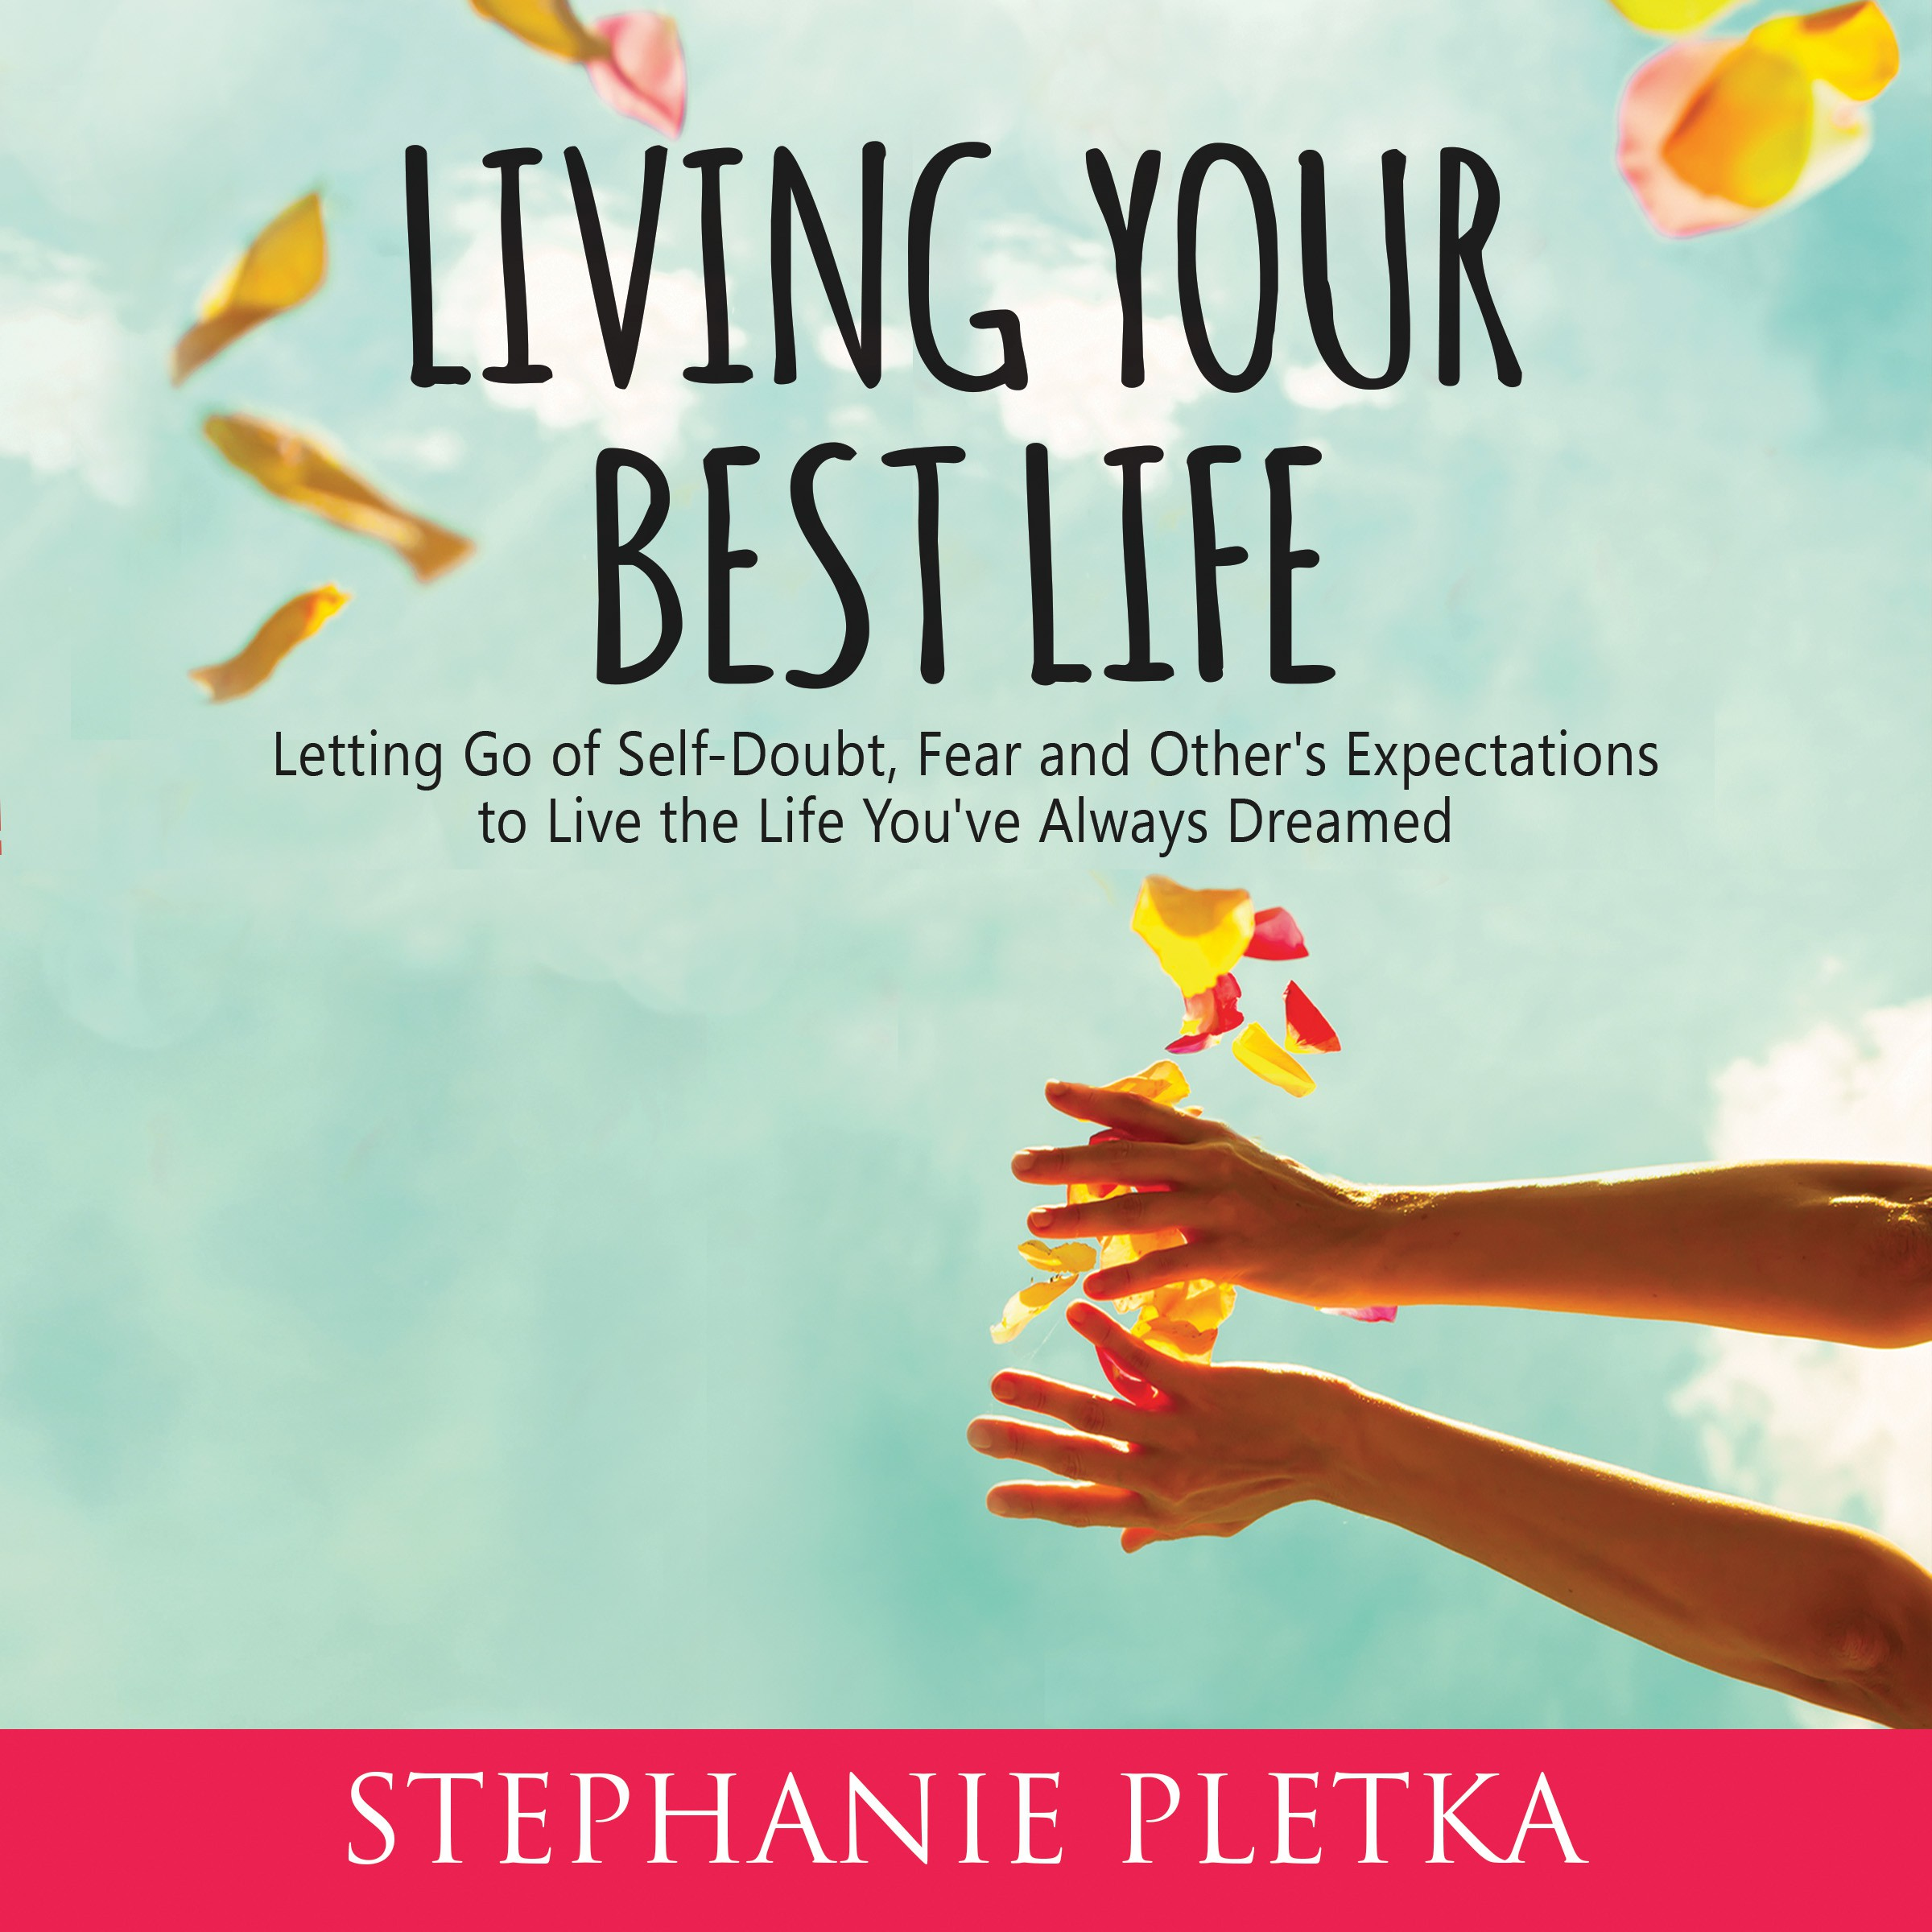 Create a Playful Picture Depicting Freedom for Living Best Life Cover